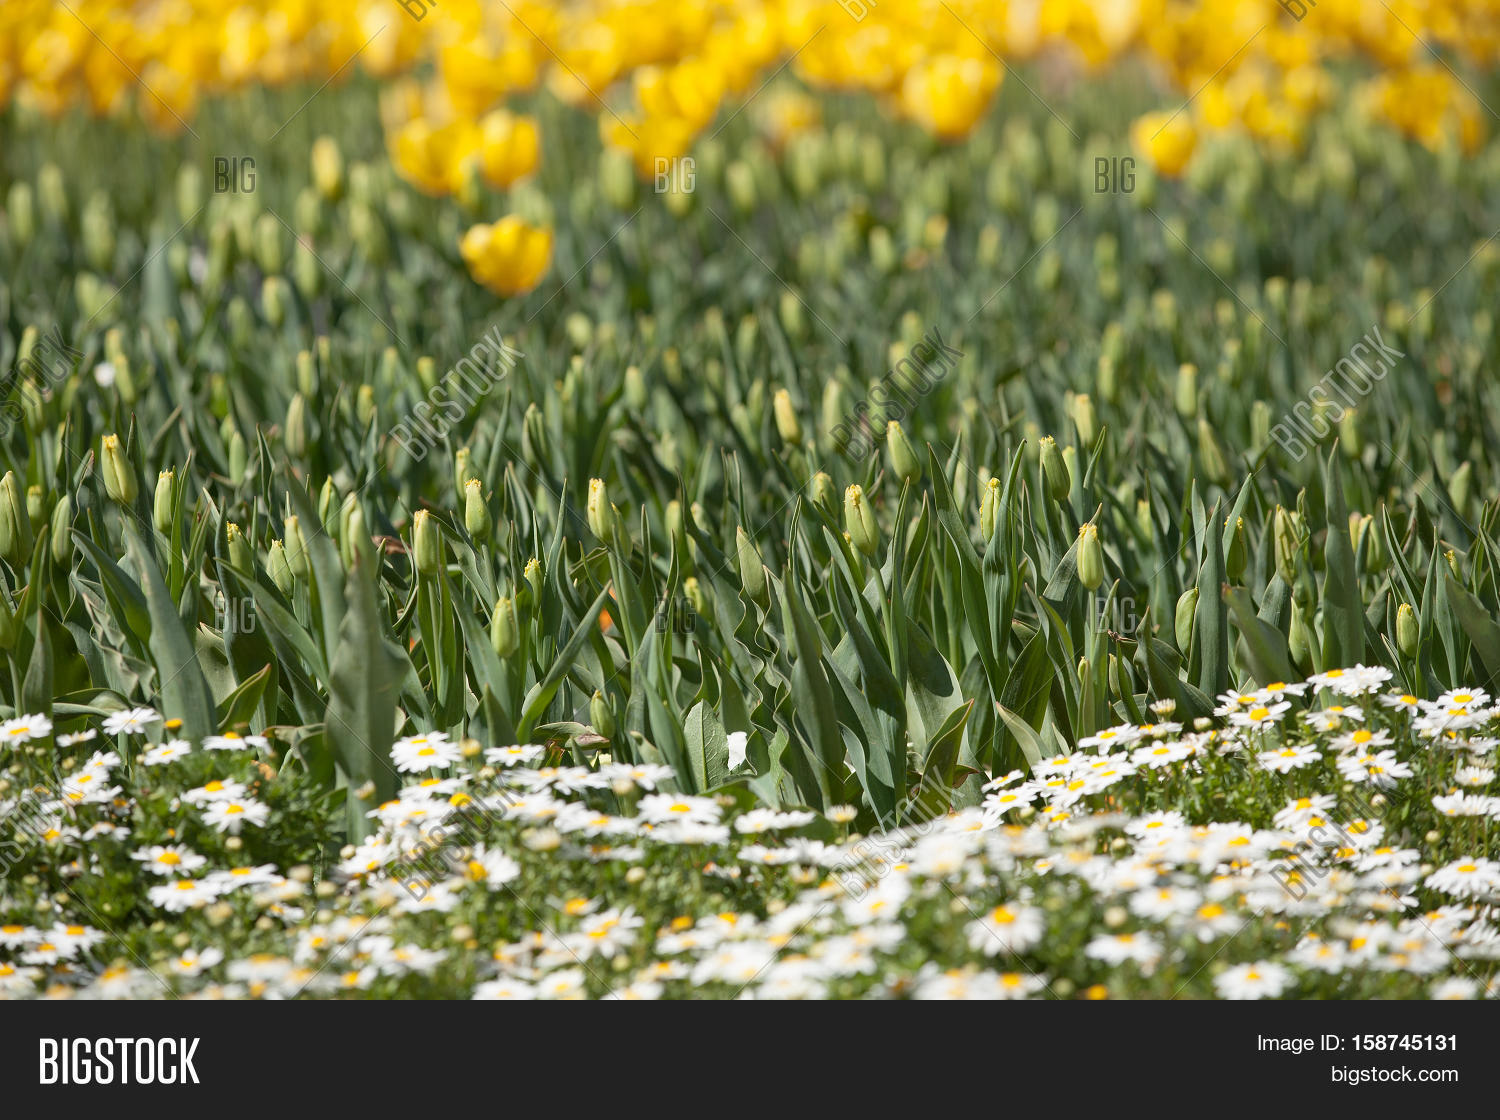 Yellow daffodils image photo free trial bigstock yellow daffodils flower heads about to bloom and other flowers in full bloom at annual flower izmirmasajfo